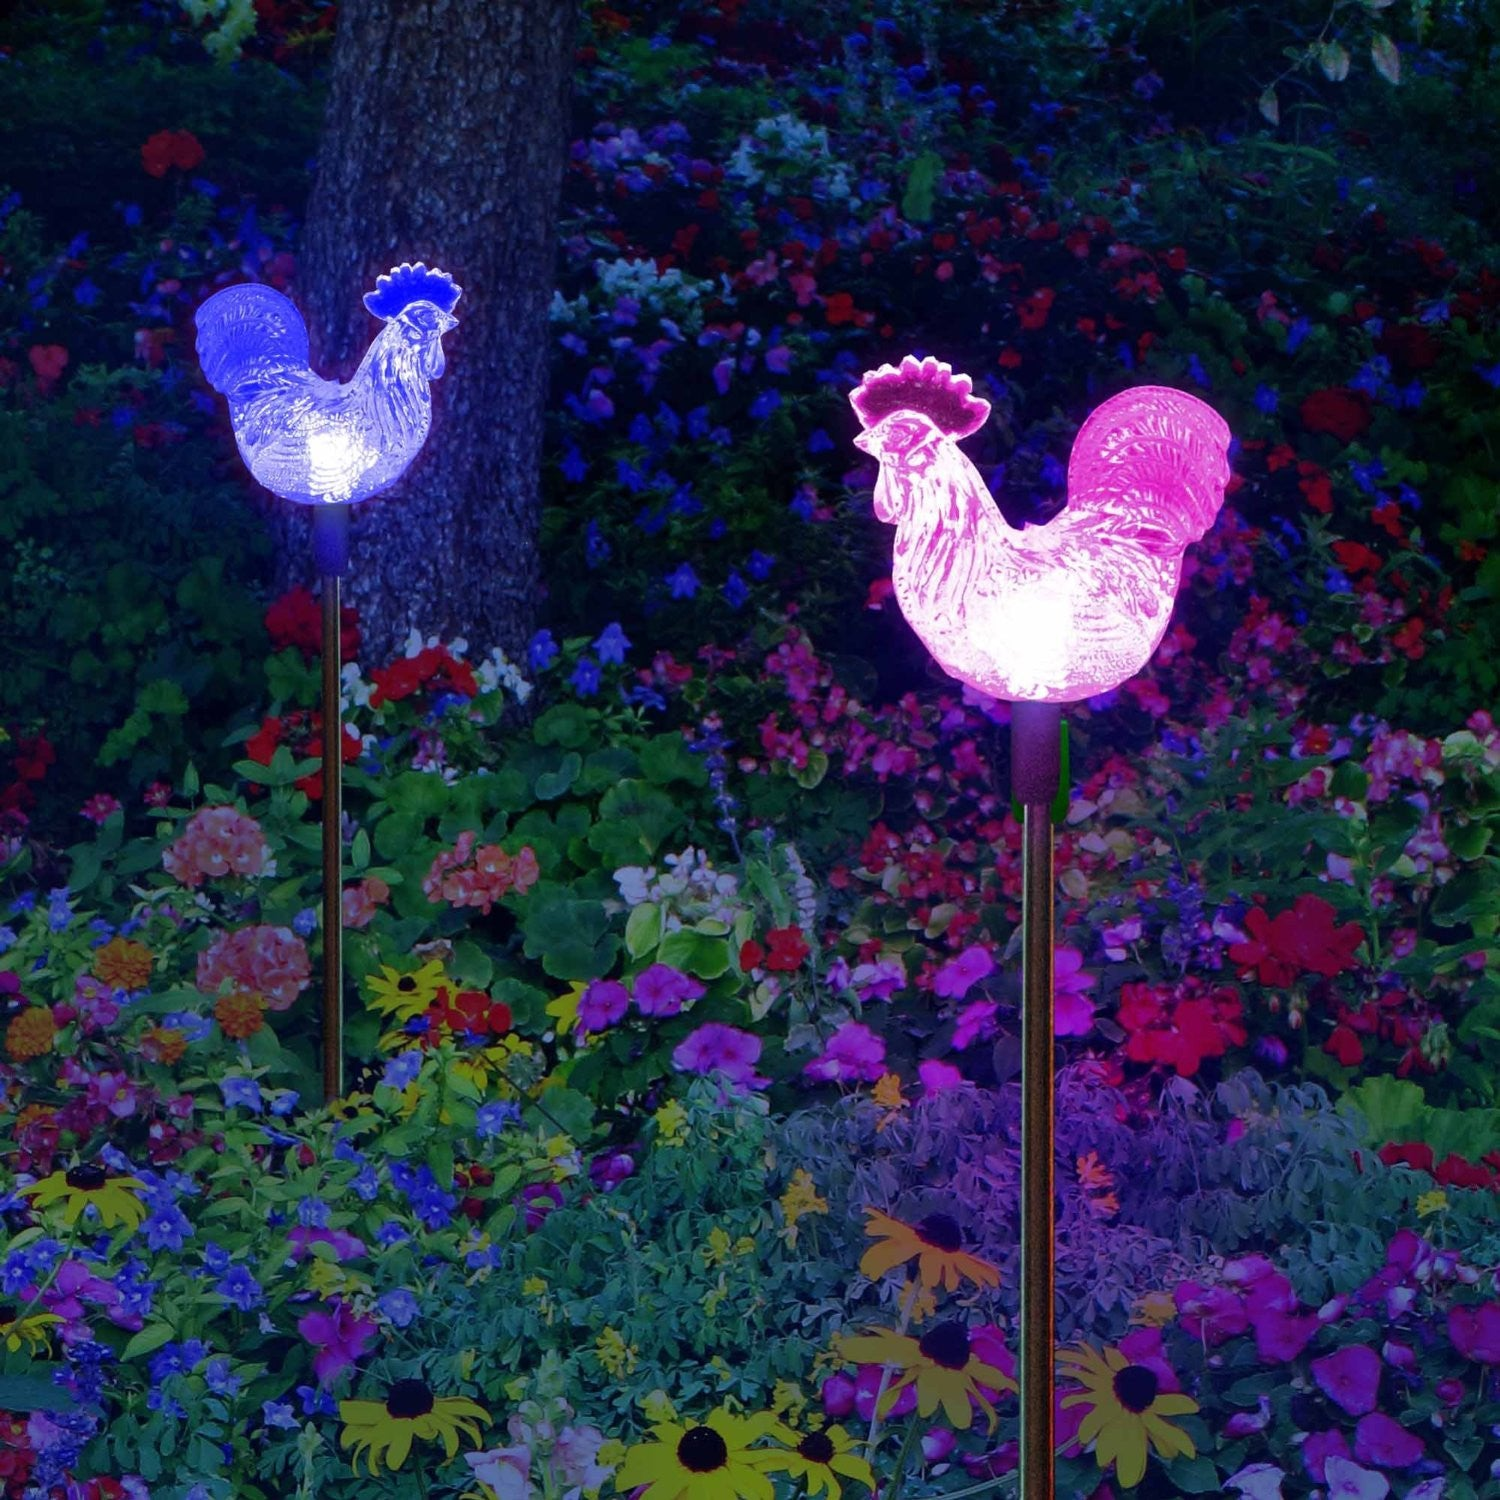 solar rooster decor garden stake lights outdoor decorative my dream palace ForSolar Garden Stakes Color Changing